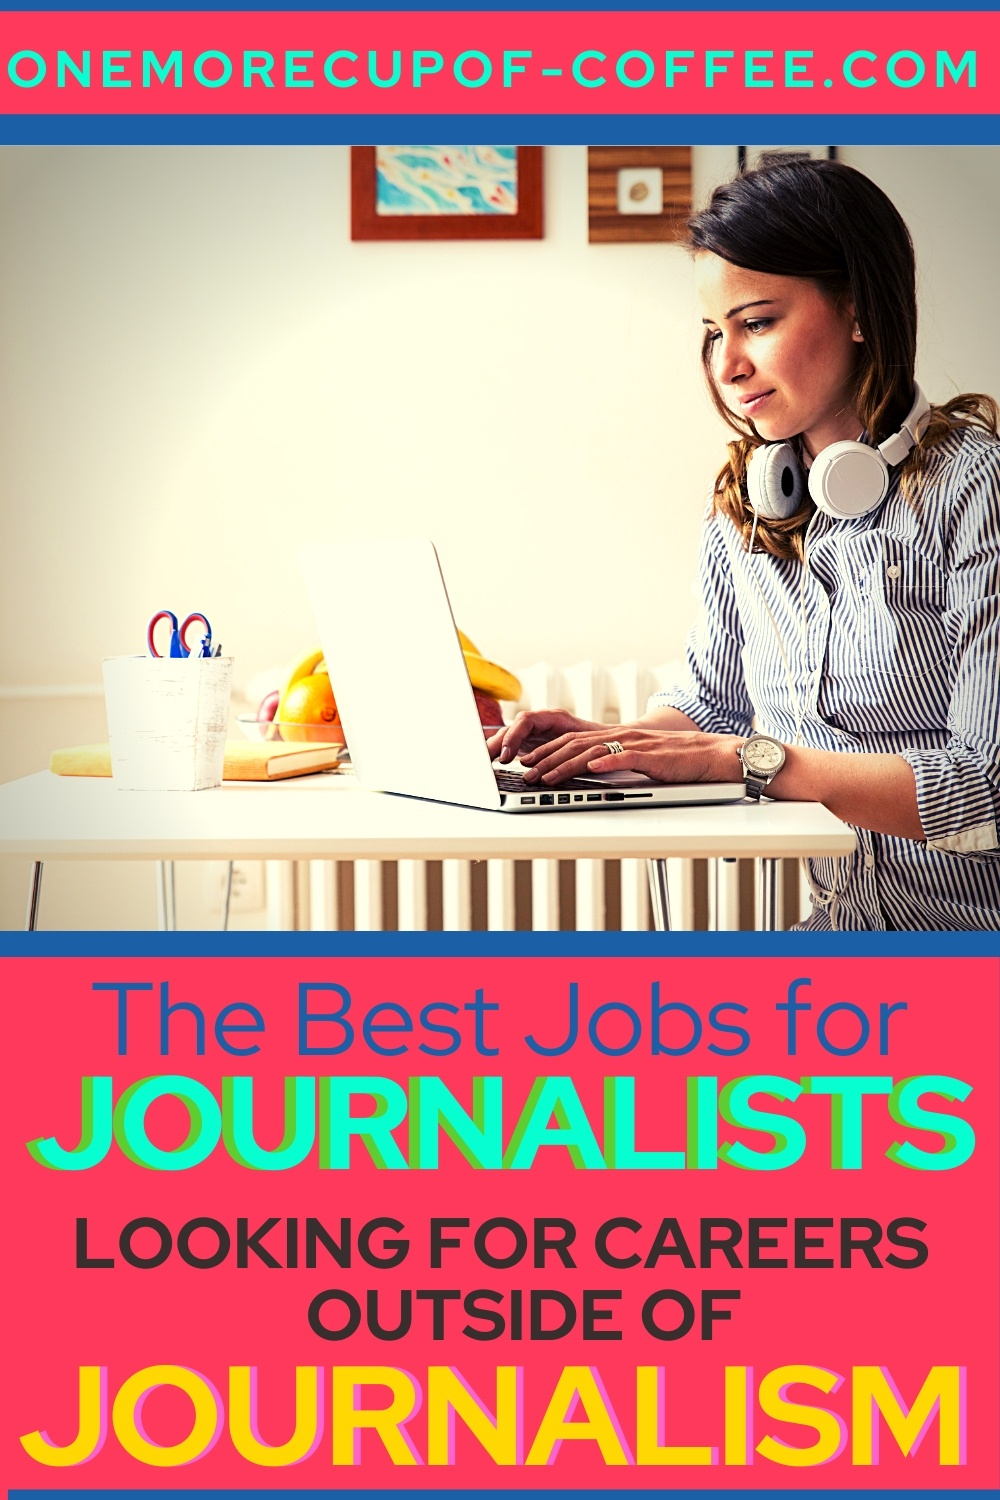 Woman working at her home office representing jobs for journalists wanting to work outside journalism